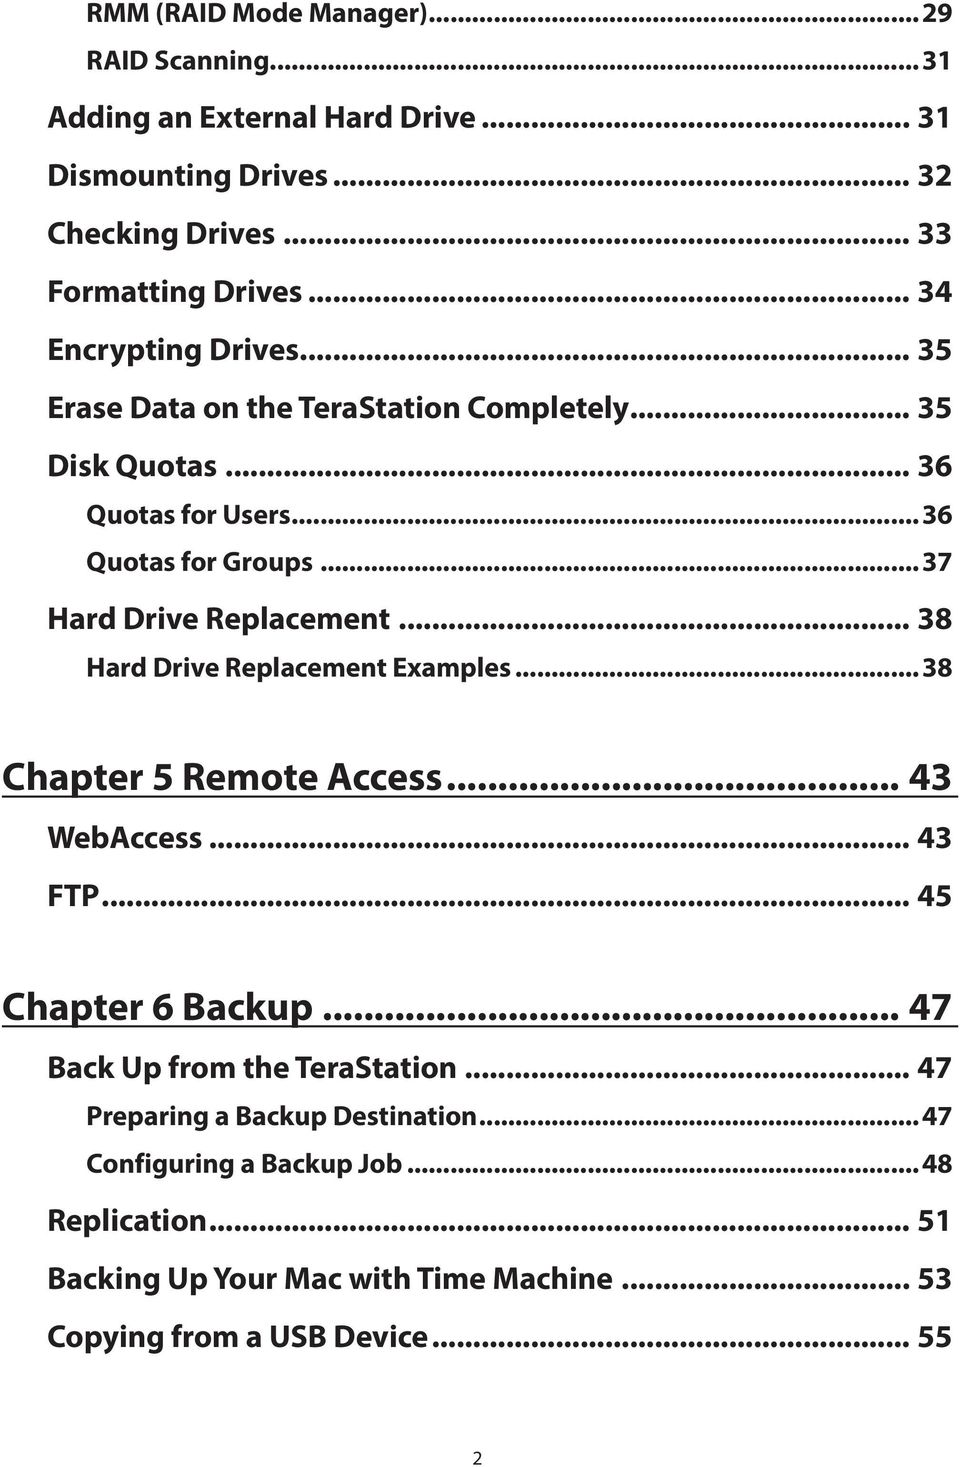 ..37 Hard Drive Replacement... 38 Hard Drive Replacement Examples...38 Chapter 5 Remote Access... 43 WebAccess... 43 FTP... 45 Chapter 6 Backup.